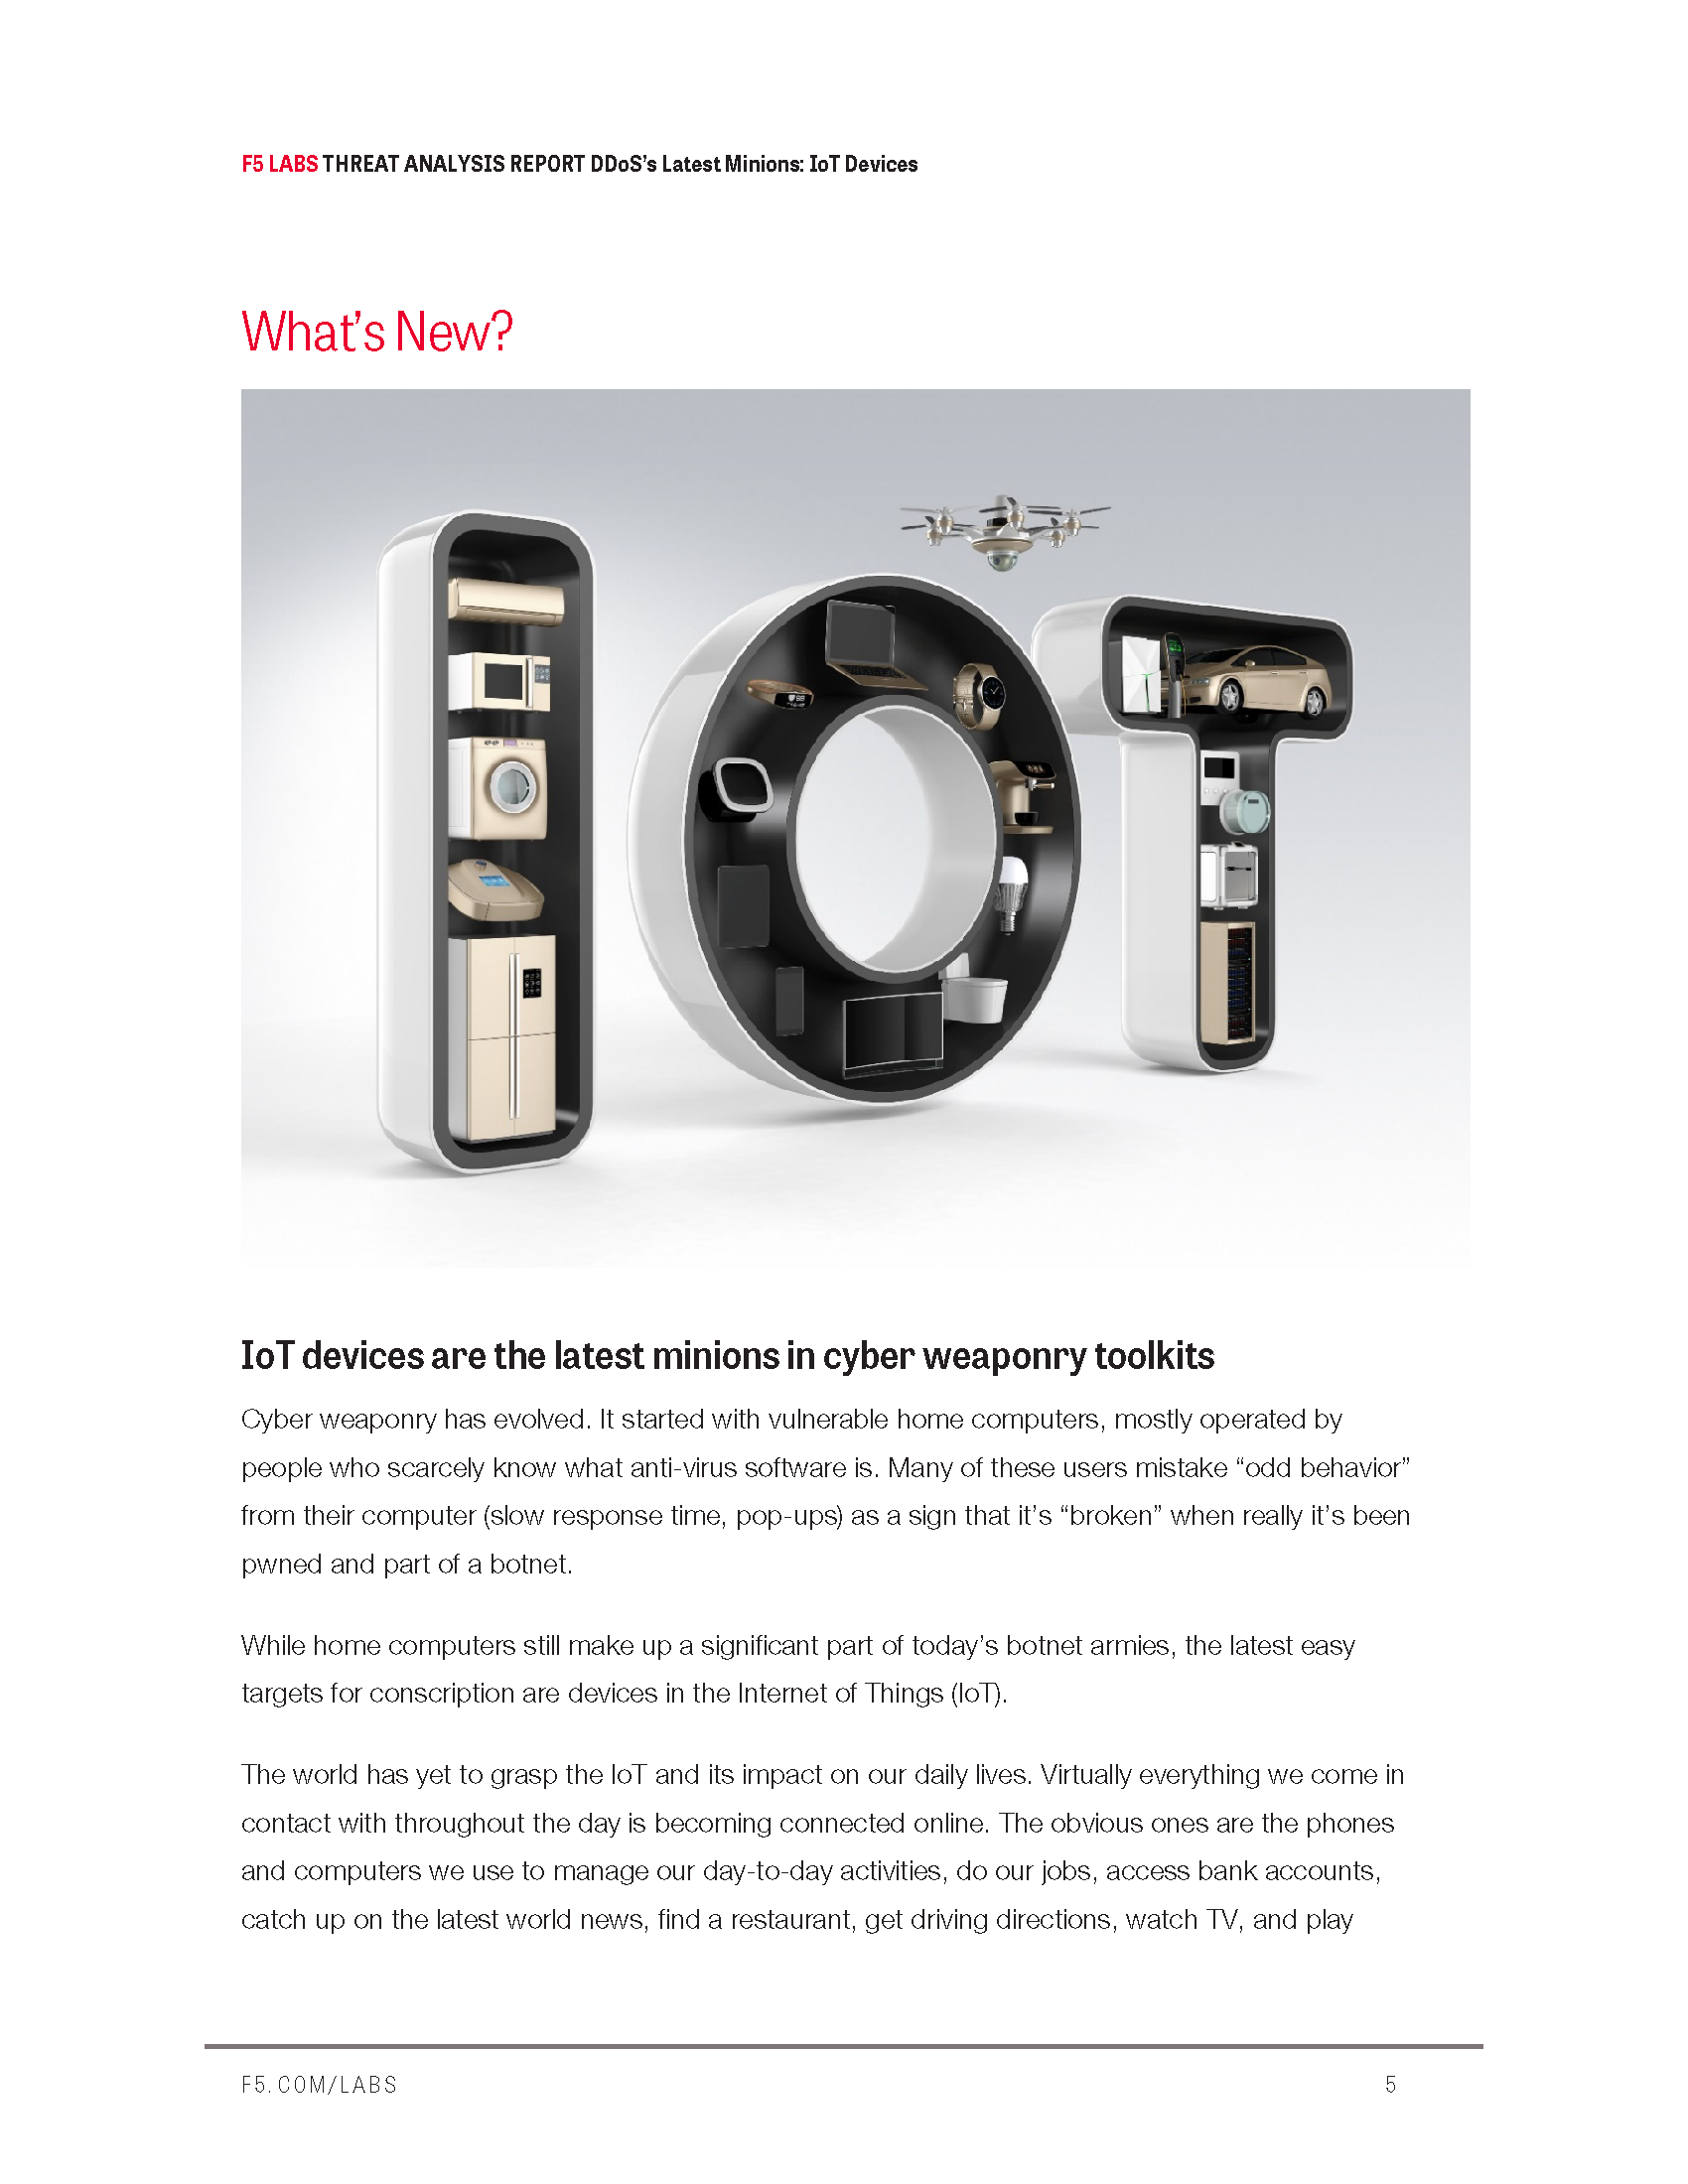 2_DDoSs_Newest_Minions_IoT_Devices_Page_05.png